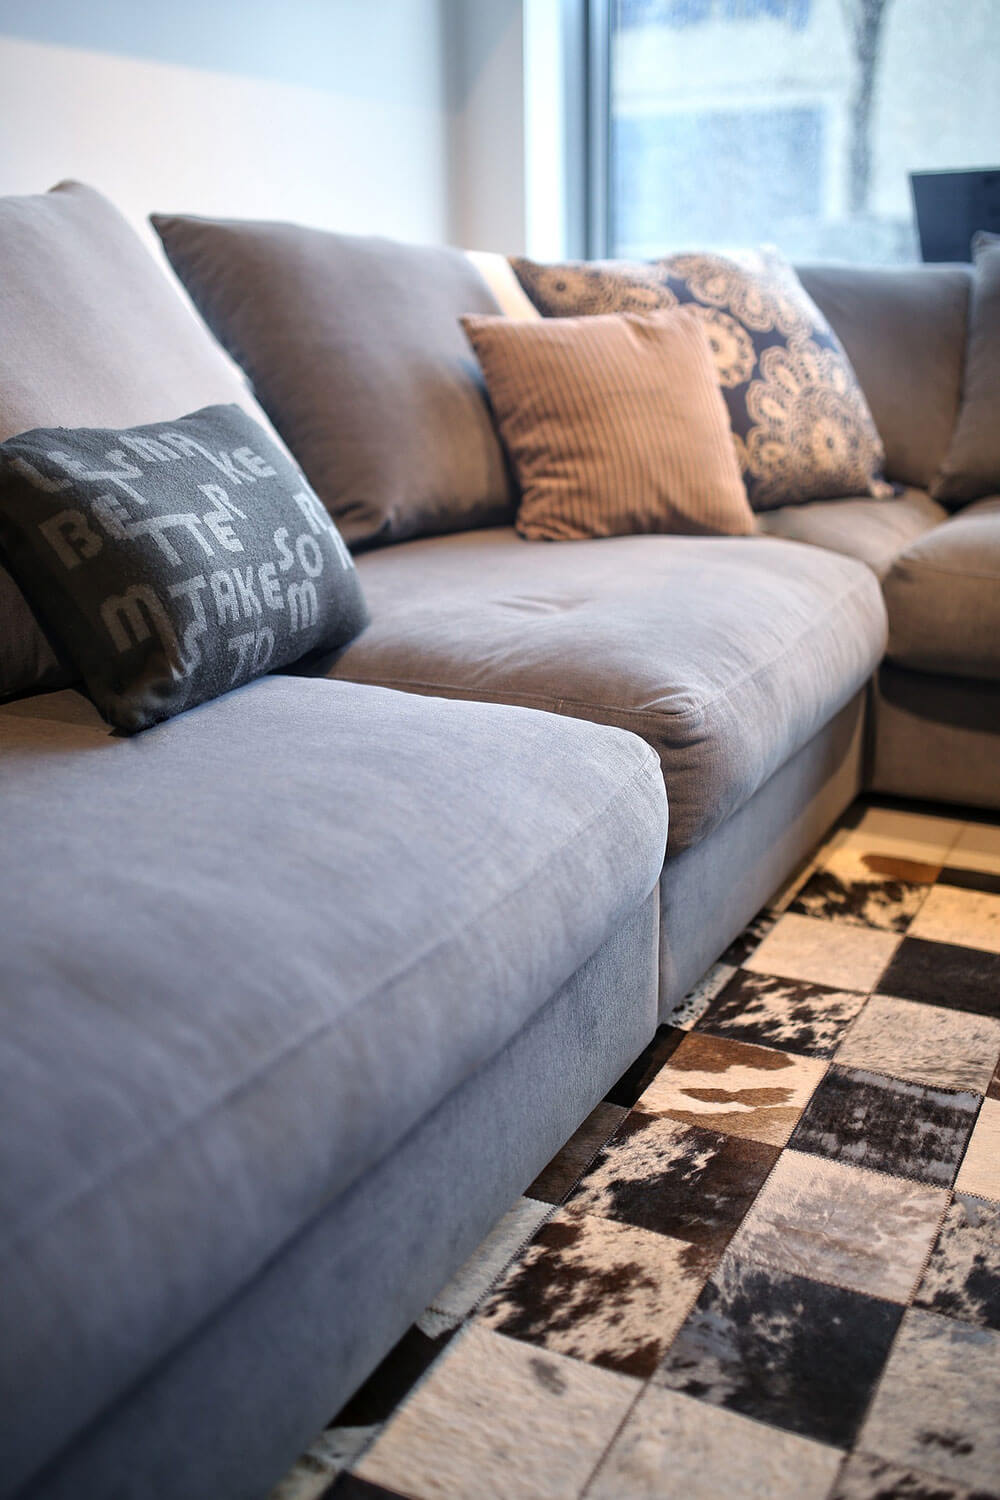 couch-791908_1920